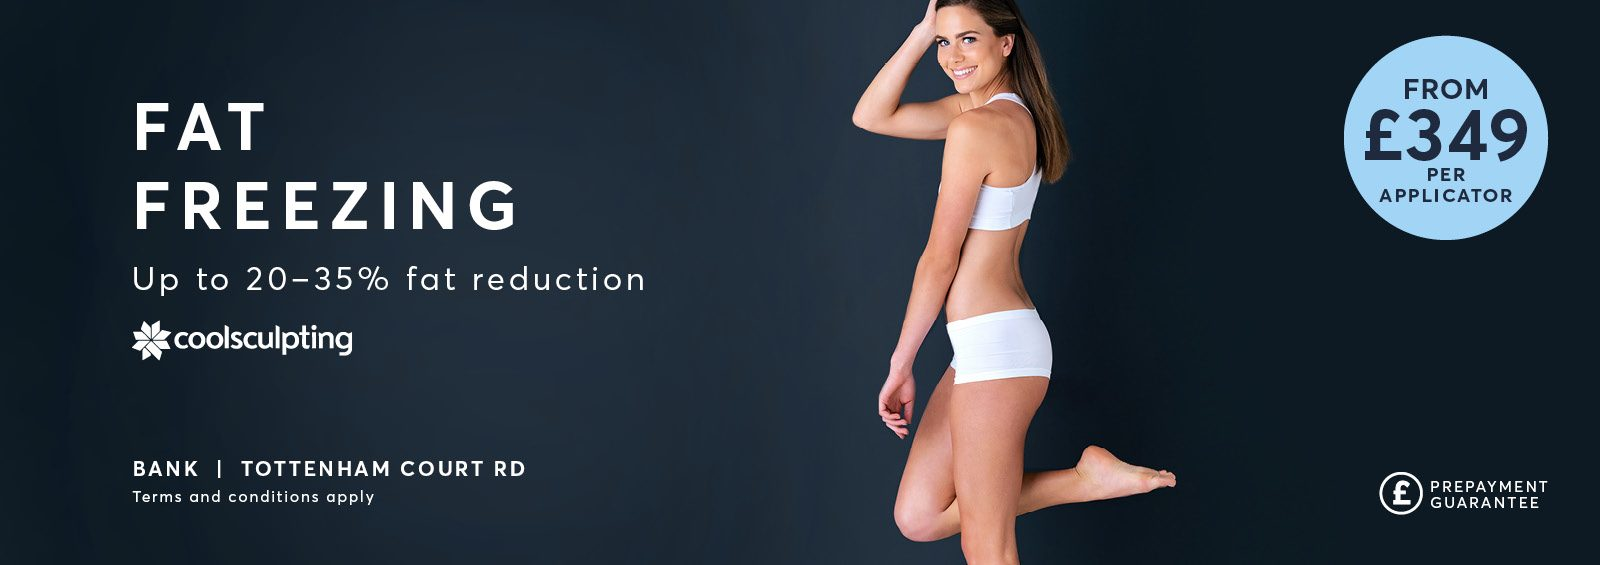 Coolsculpting from £349 banner